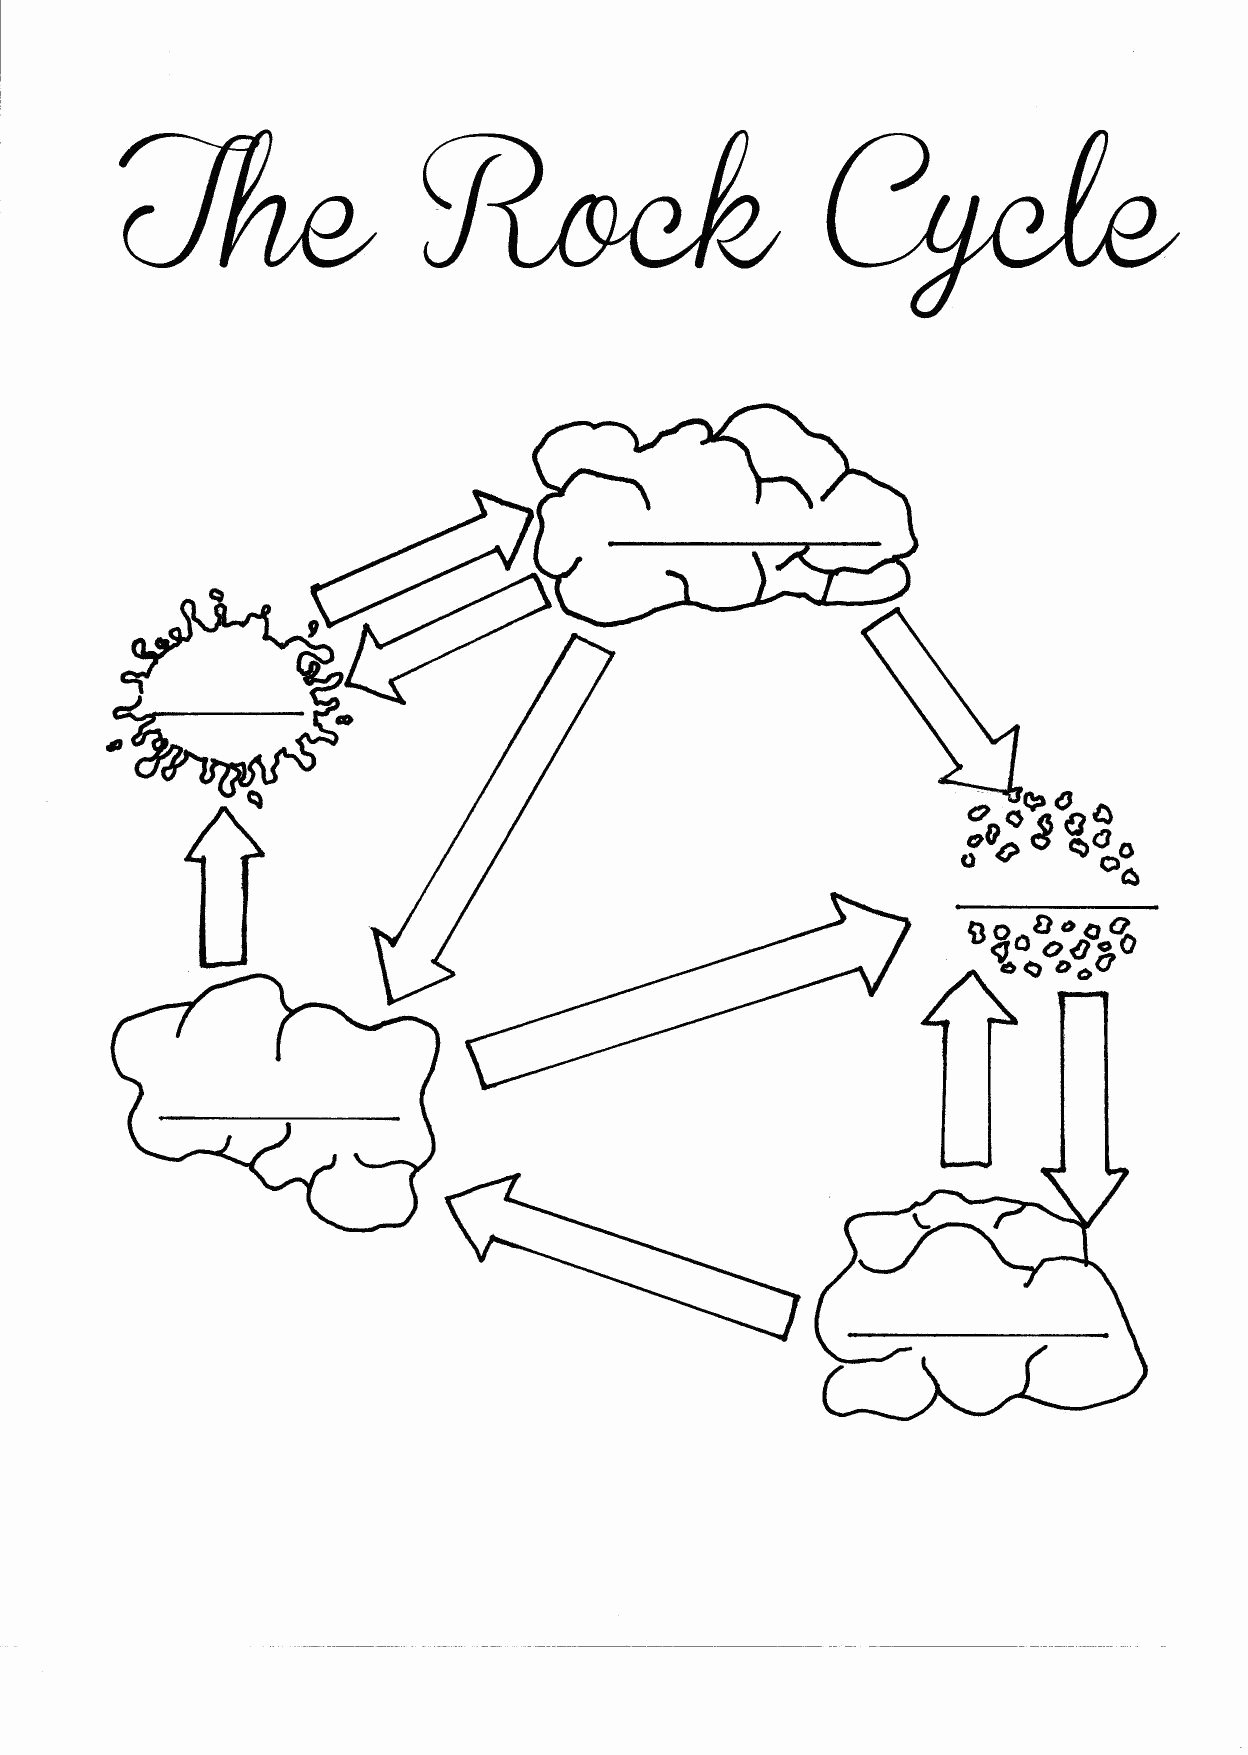 Rock Cycle Diagram Worksheet New the Rock Cycle Blank Worksheet Fill In as You Talk About